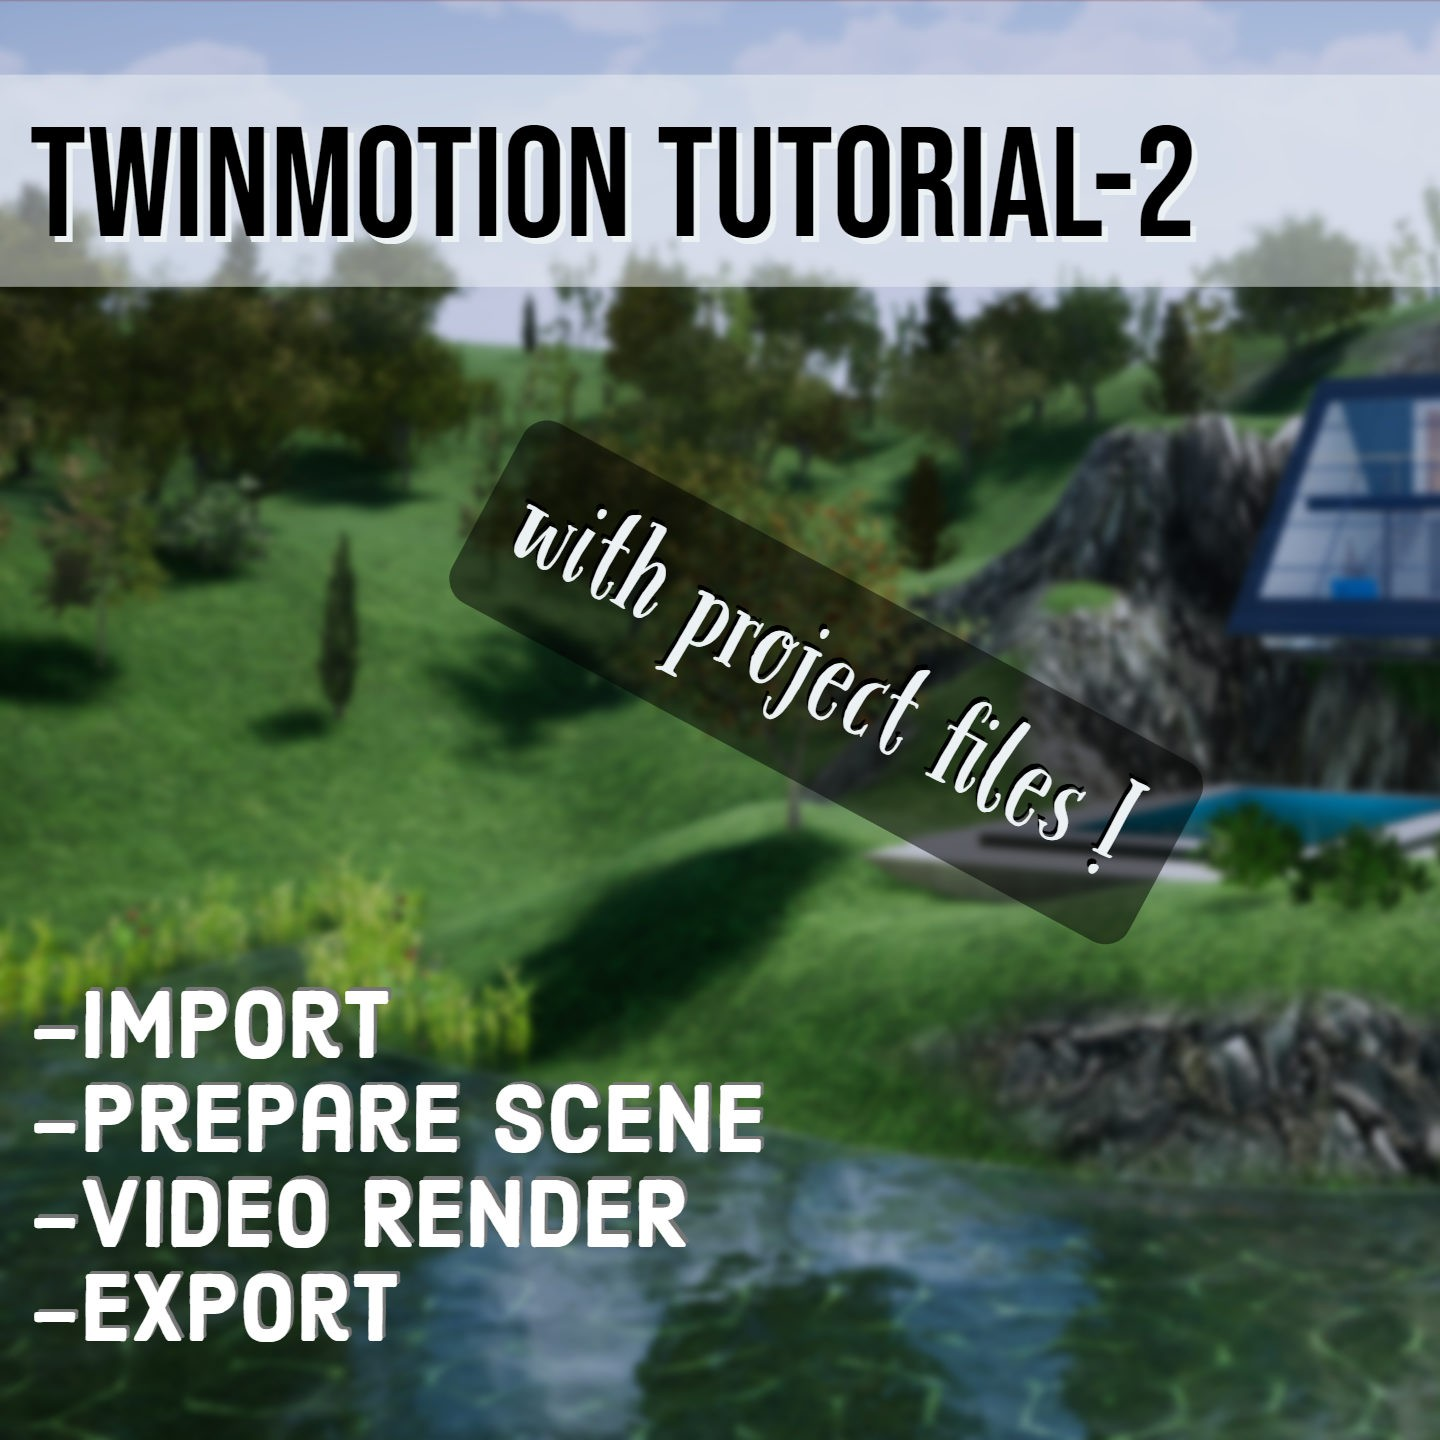 Twinmotion Tutorial 2 tutorial|twinmotion